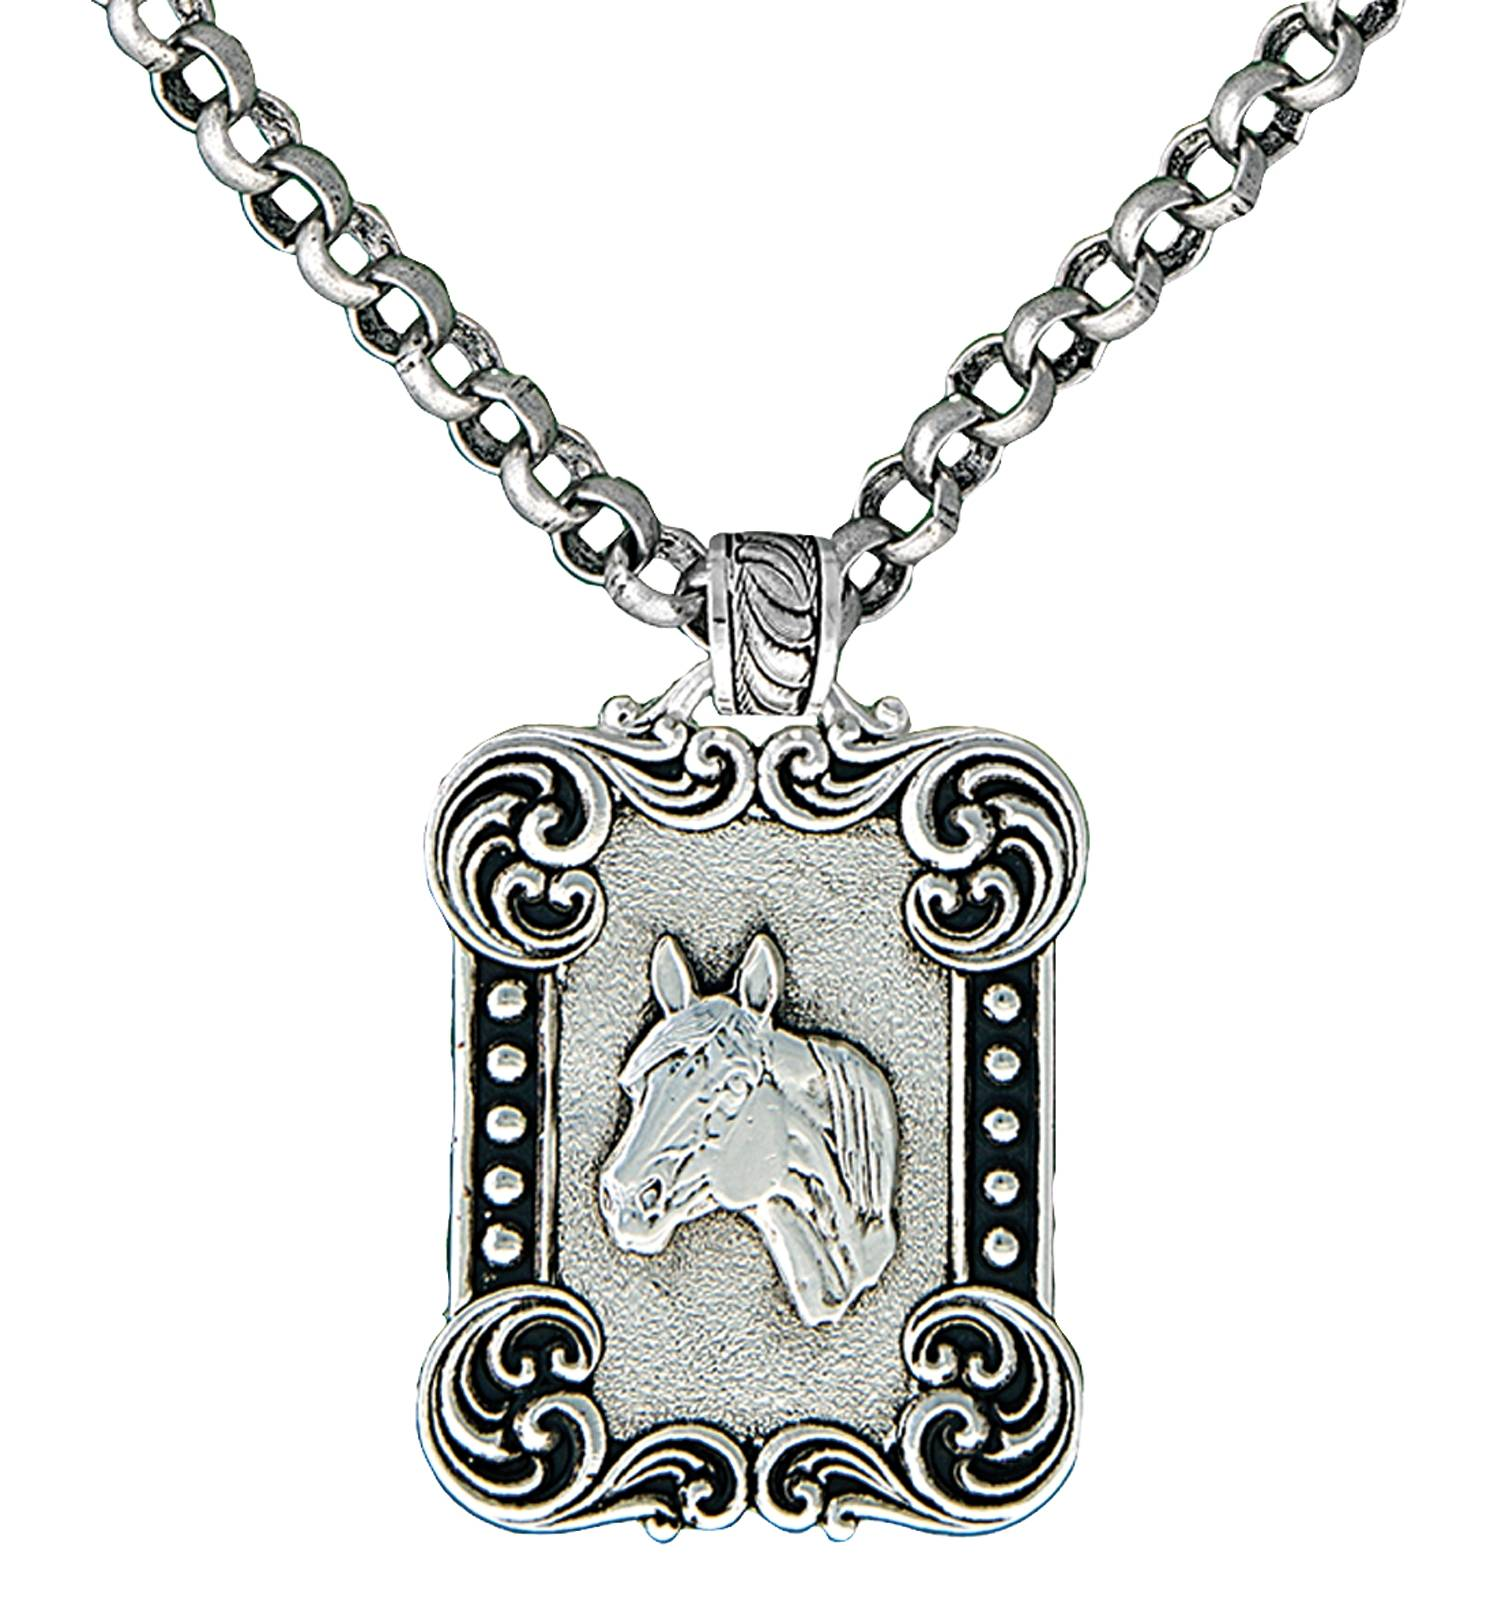 Montana Silversmiths Western Deco Rider's Cameo Necklace